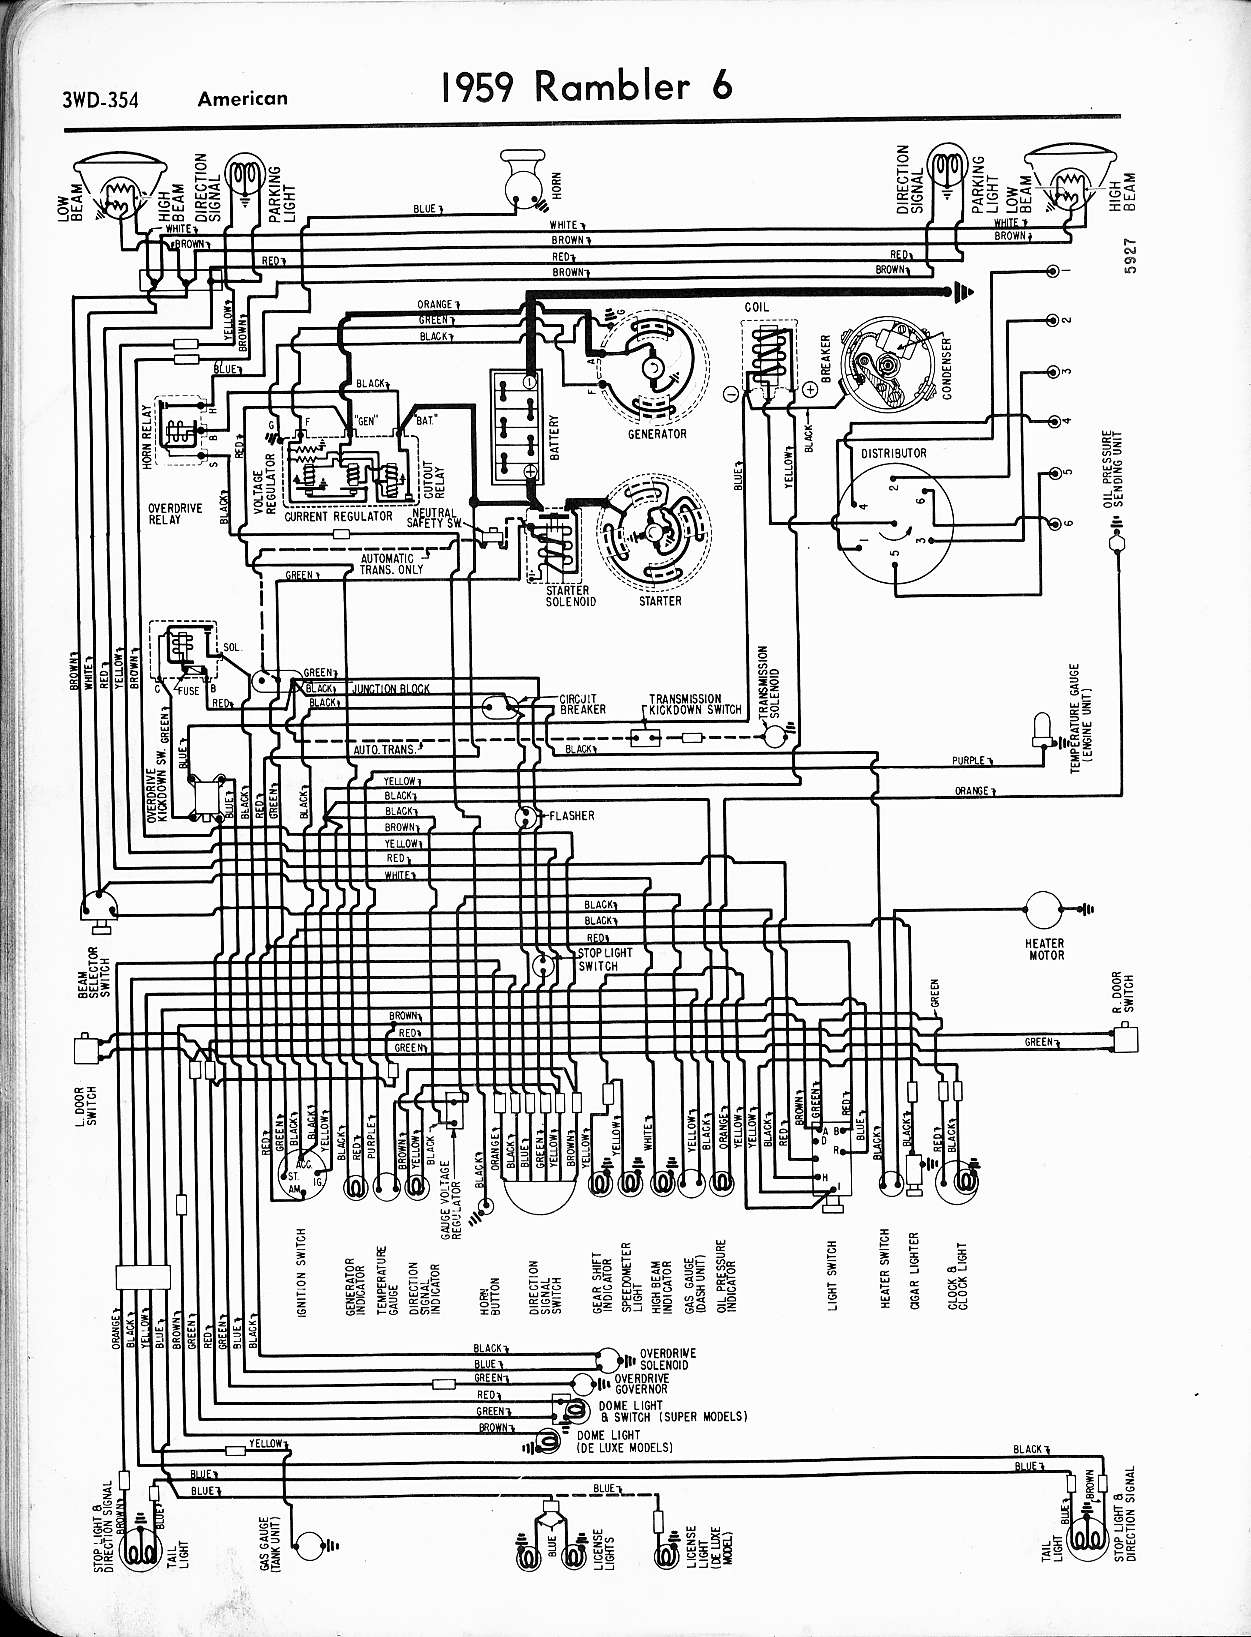 Awesome Clic Car Wiring Harness Wiring Diagram Wiring Cloud Icalpermsplehendilmohammedshrineorg